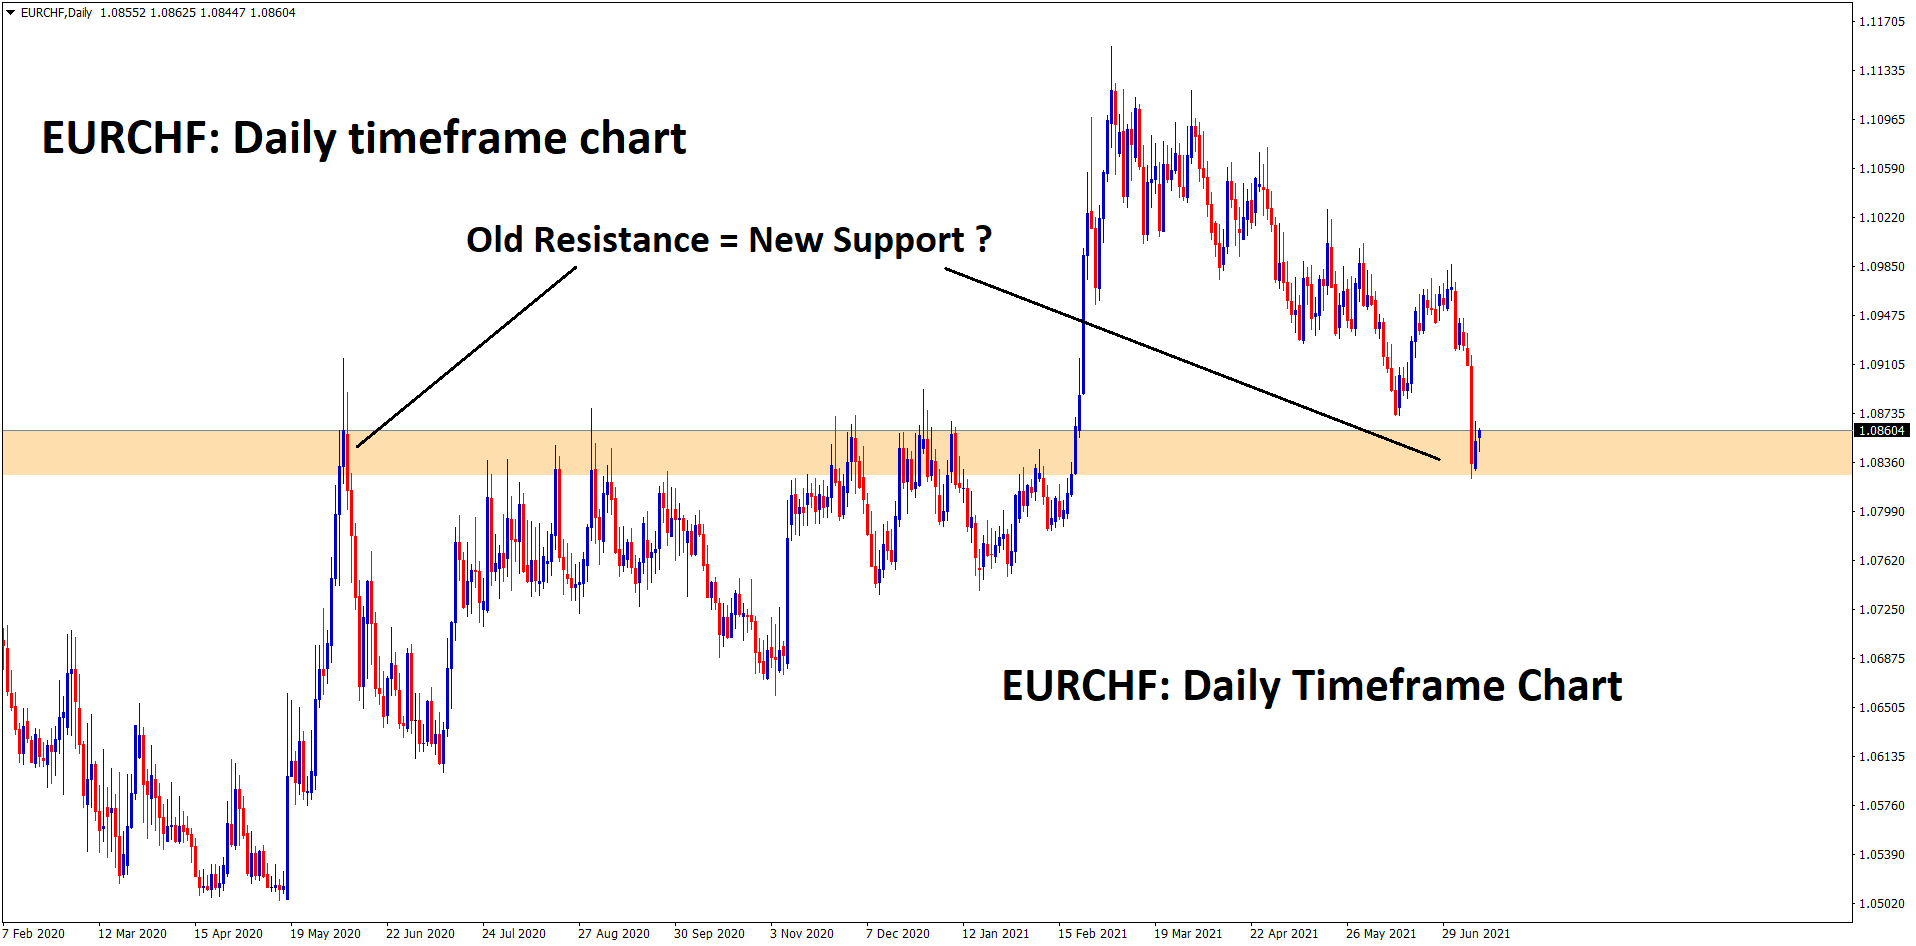 Old resistance converted into new support zone Wait for the bounce back to confirm it.